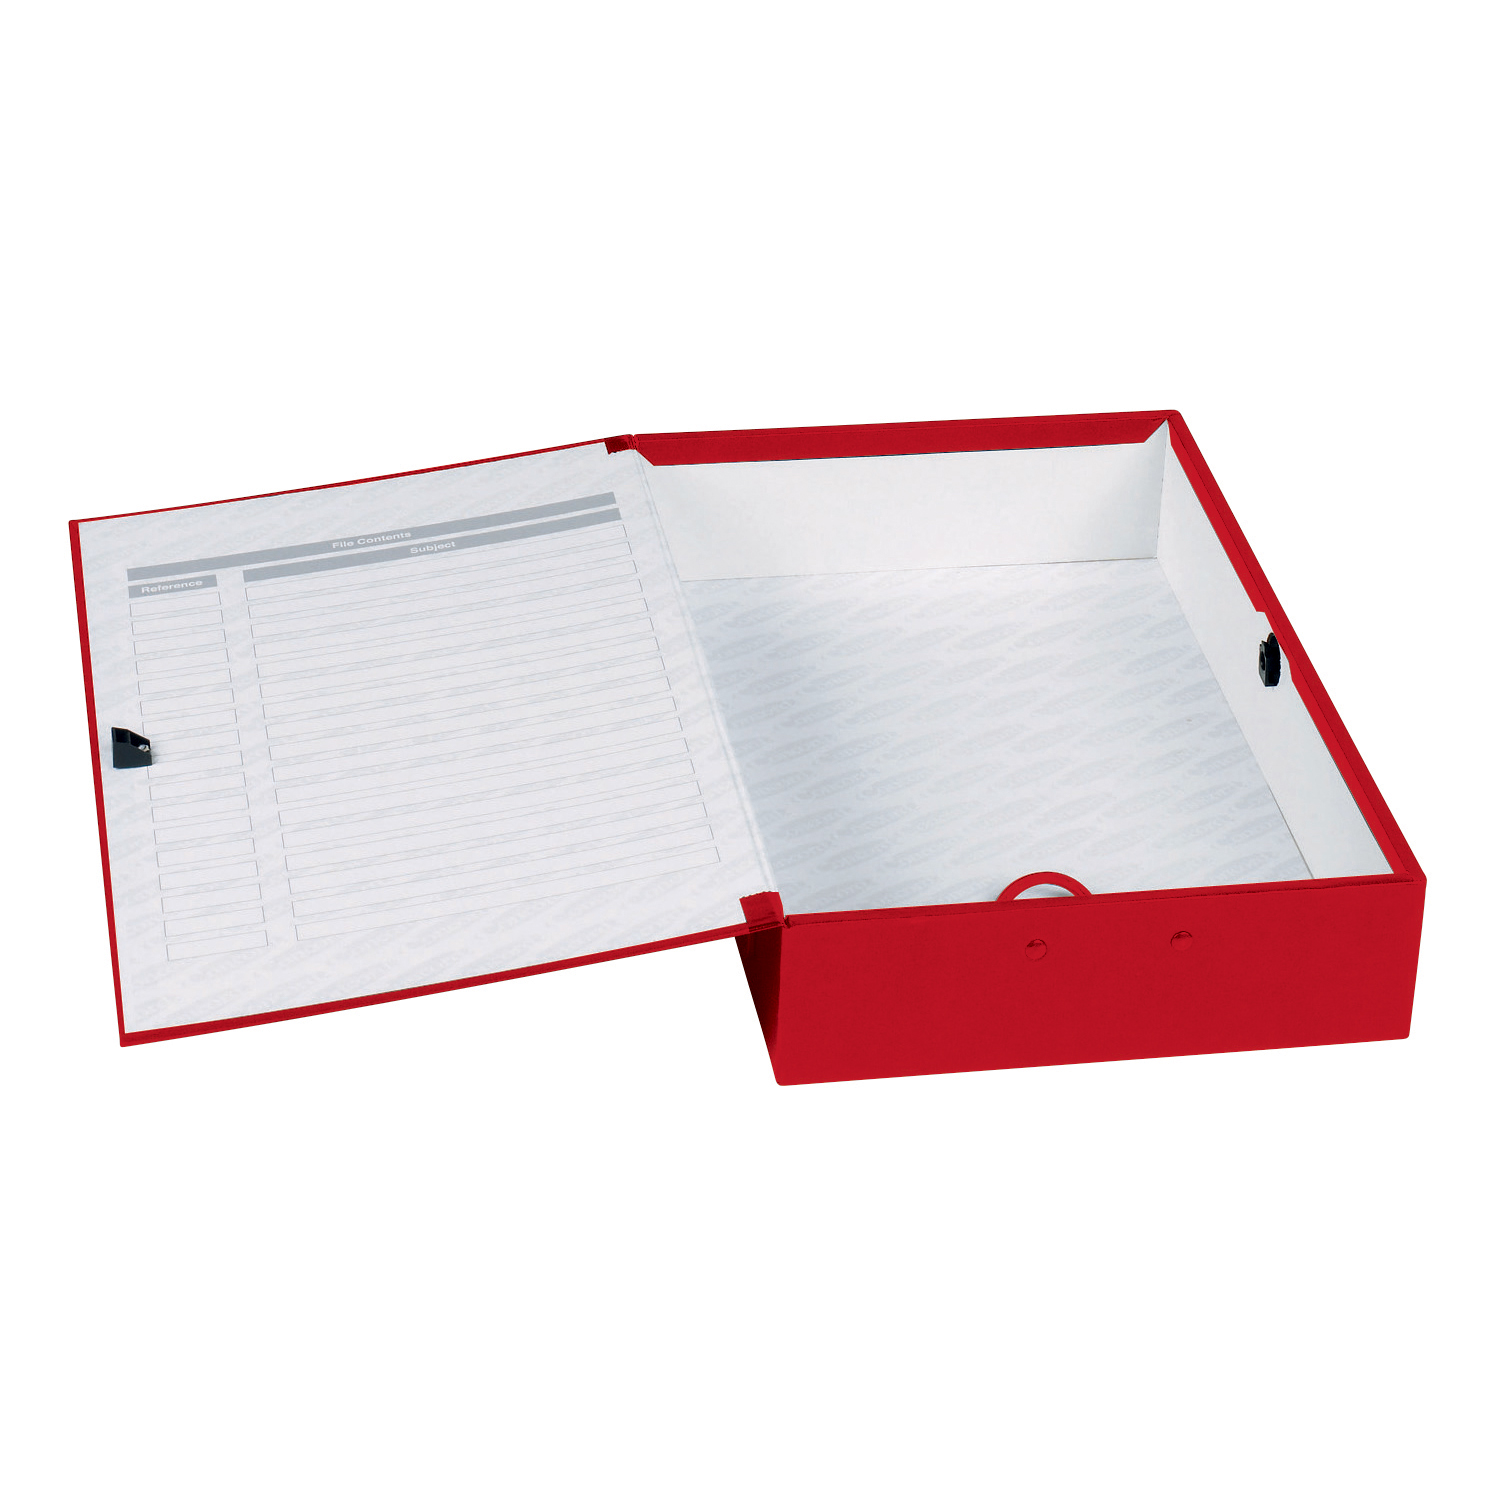 Box Files Concord Classic Box File 75mm Spine Foolscap Red Ref C1279 Pack 5